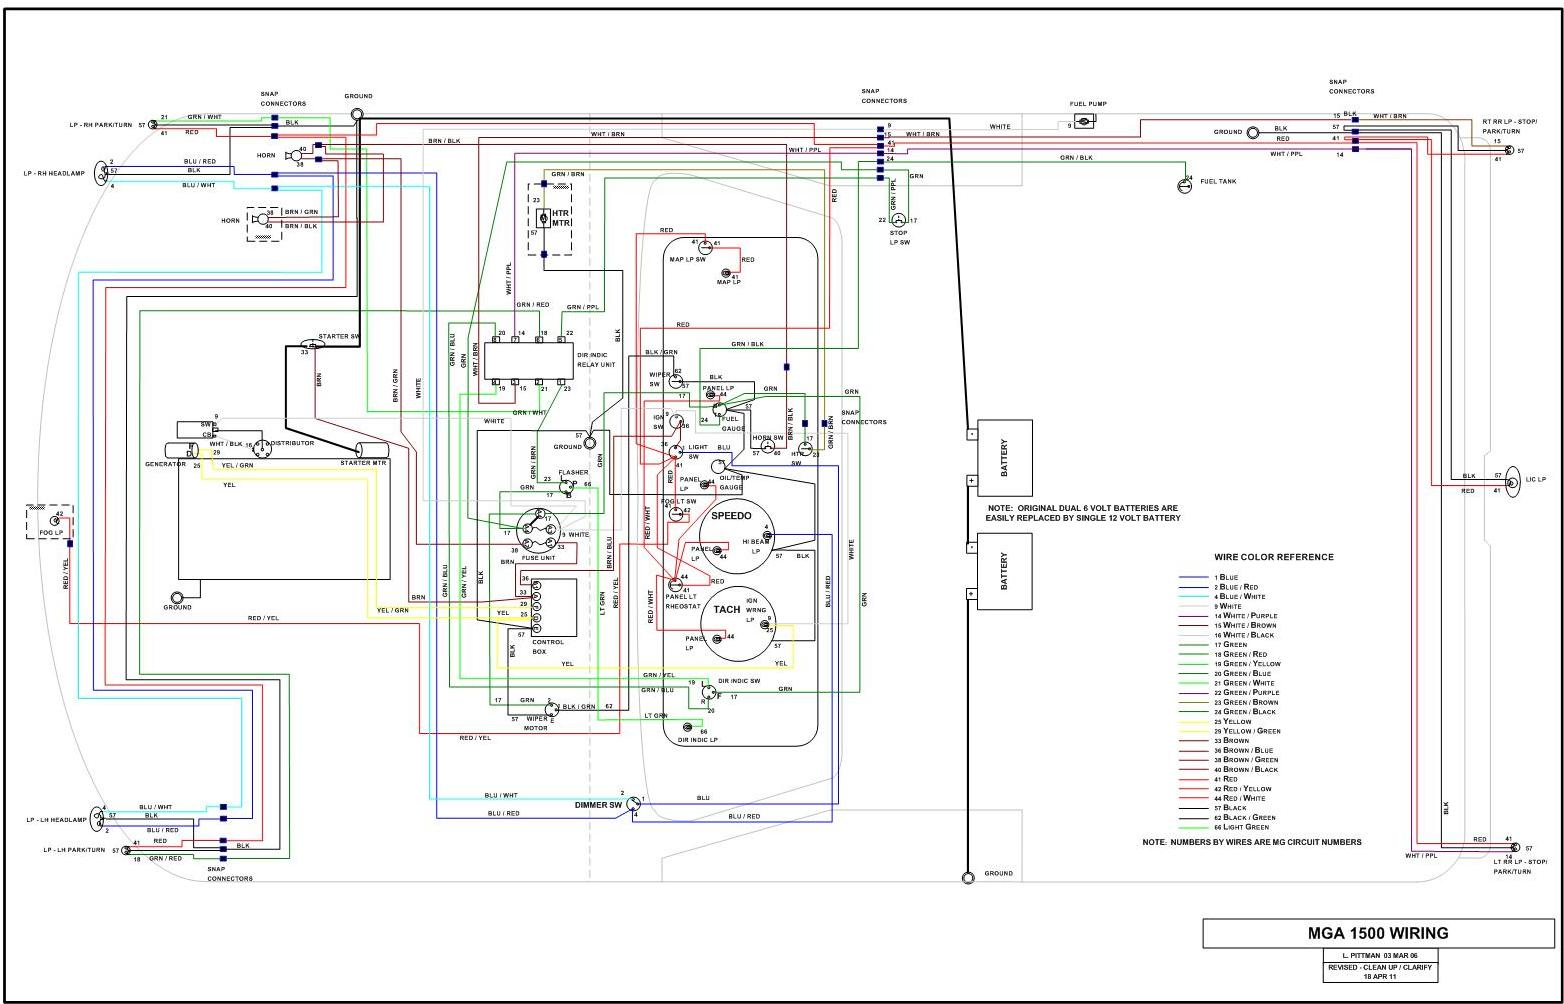 mga subassembly wiring rh larrysmga net 1999 Ford F-150 Wiring Diagram MGB Alternator Conversion Wiring Diagram